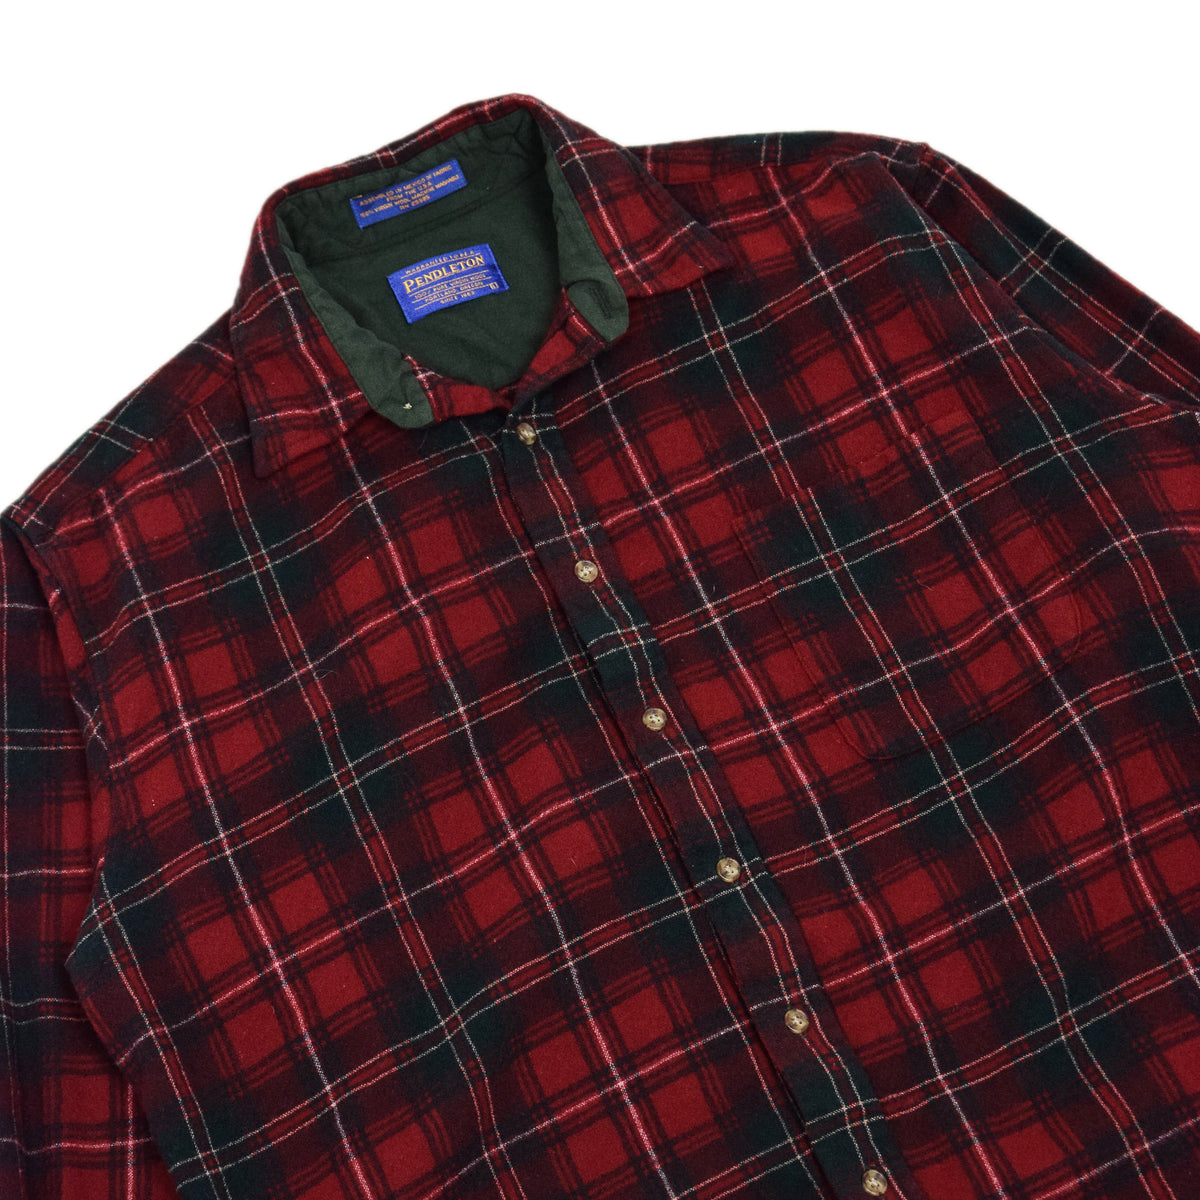 Vintage Pendleton Plaid Long Sleeve Virgin Wool Check Shirt L COLLAR